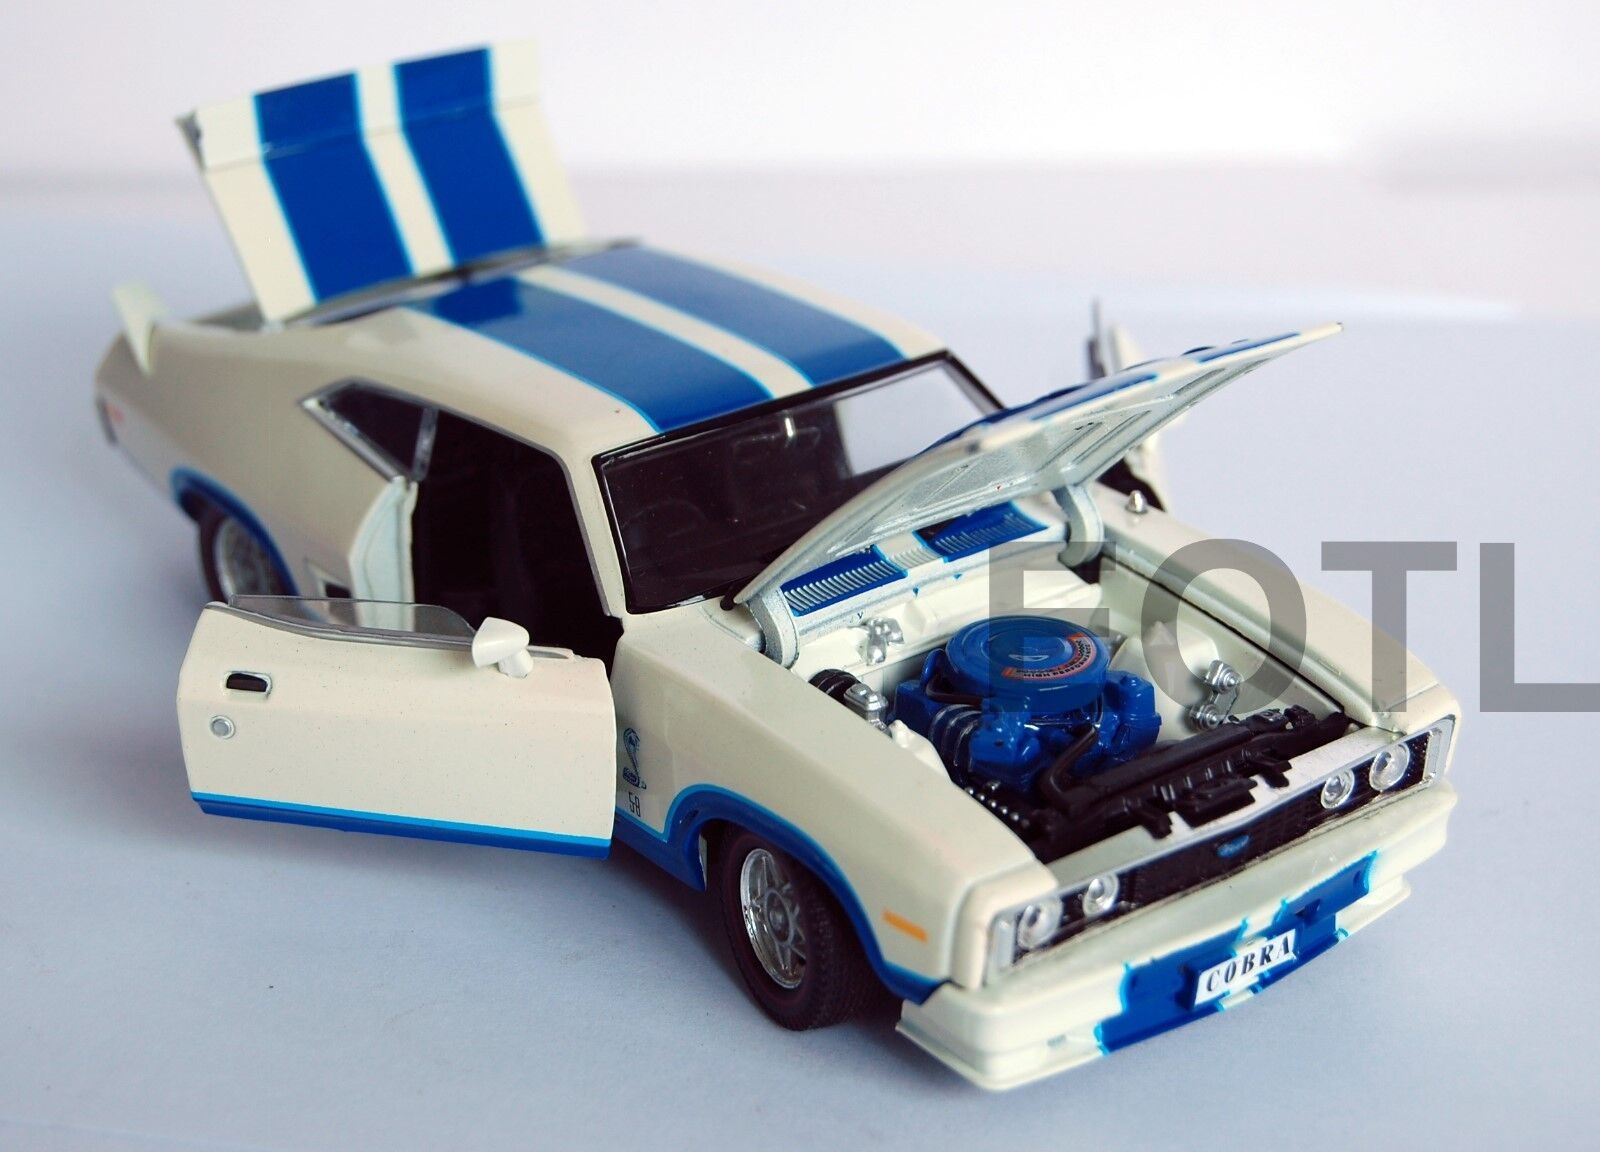 OzLegends Ford Falcon XC Cobra Option 97 with Bonnet Scoop 1 32 Limited Edition